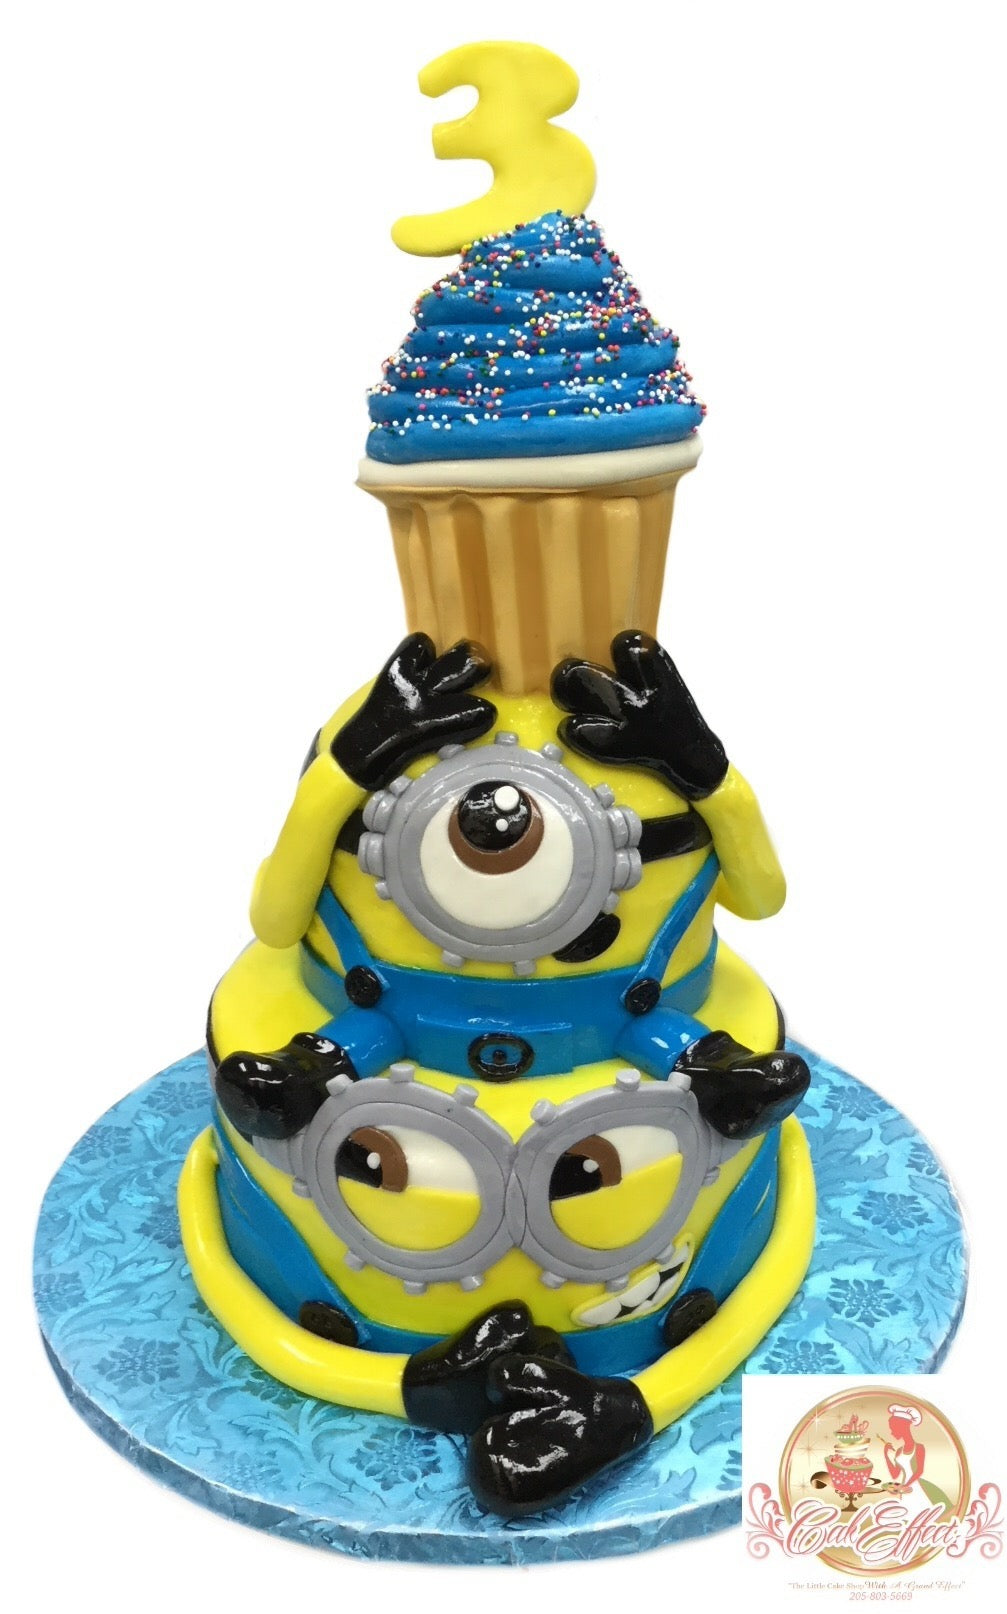 Birthday Cake Despicable Me Minions - CakEffect Bakery